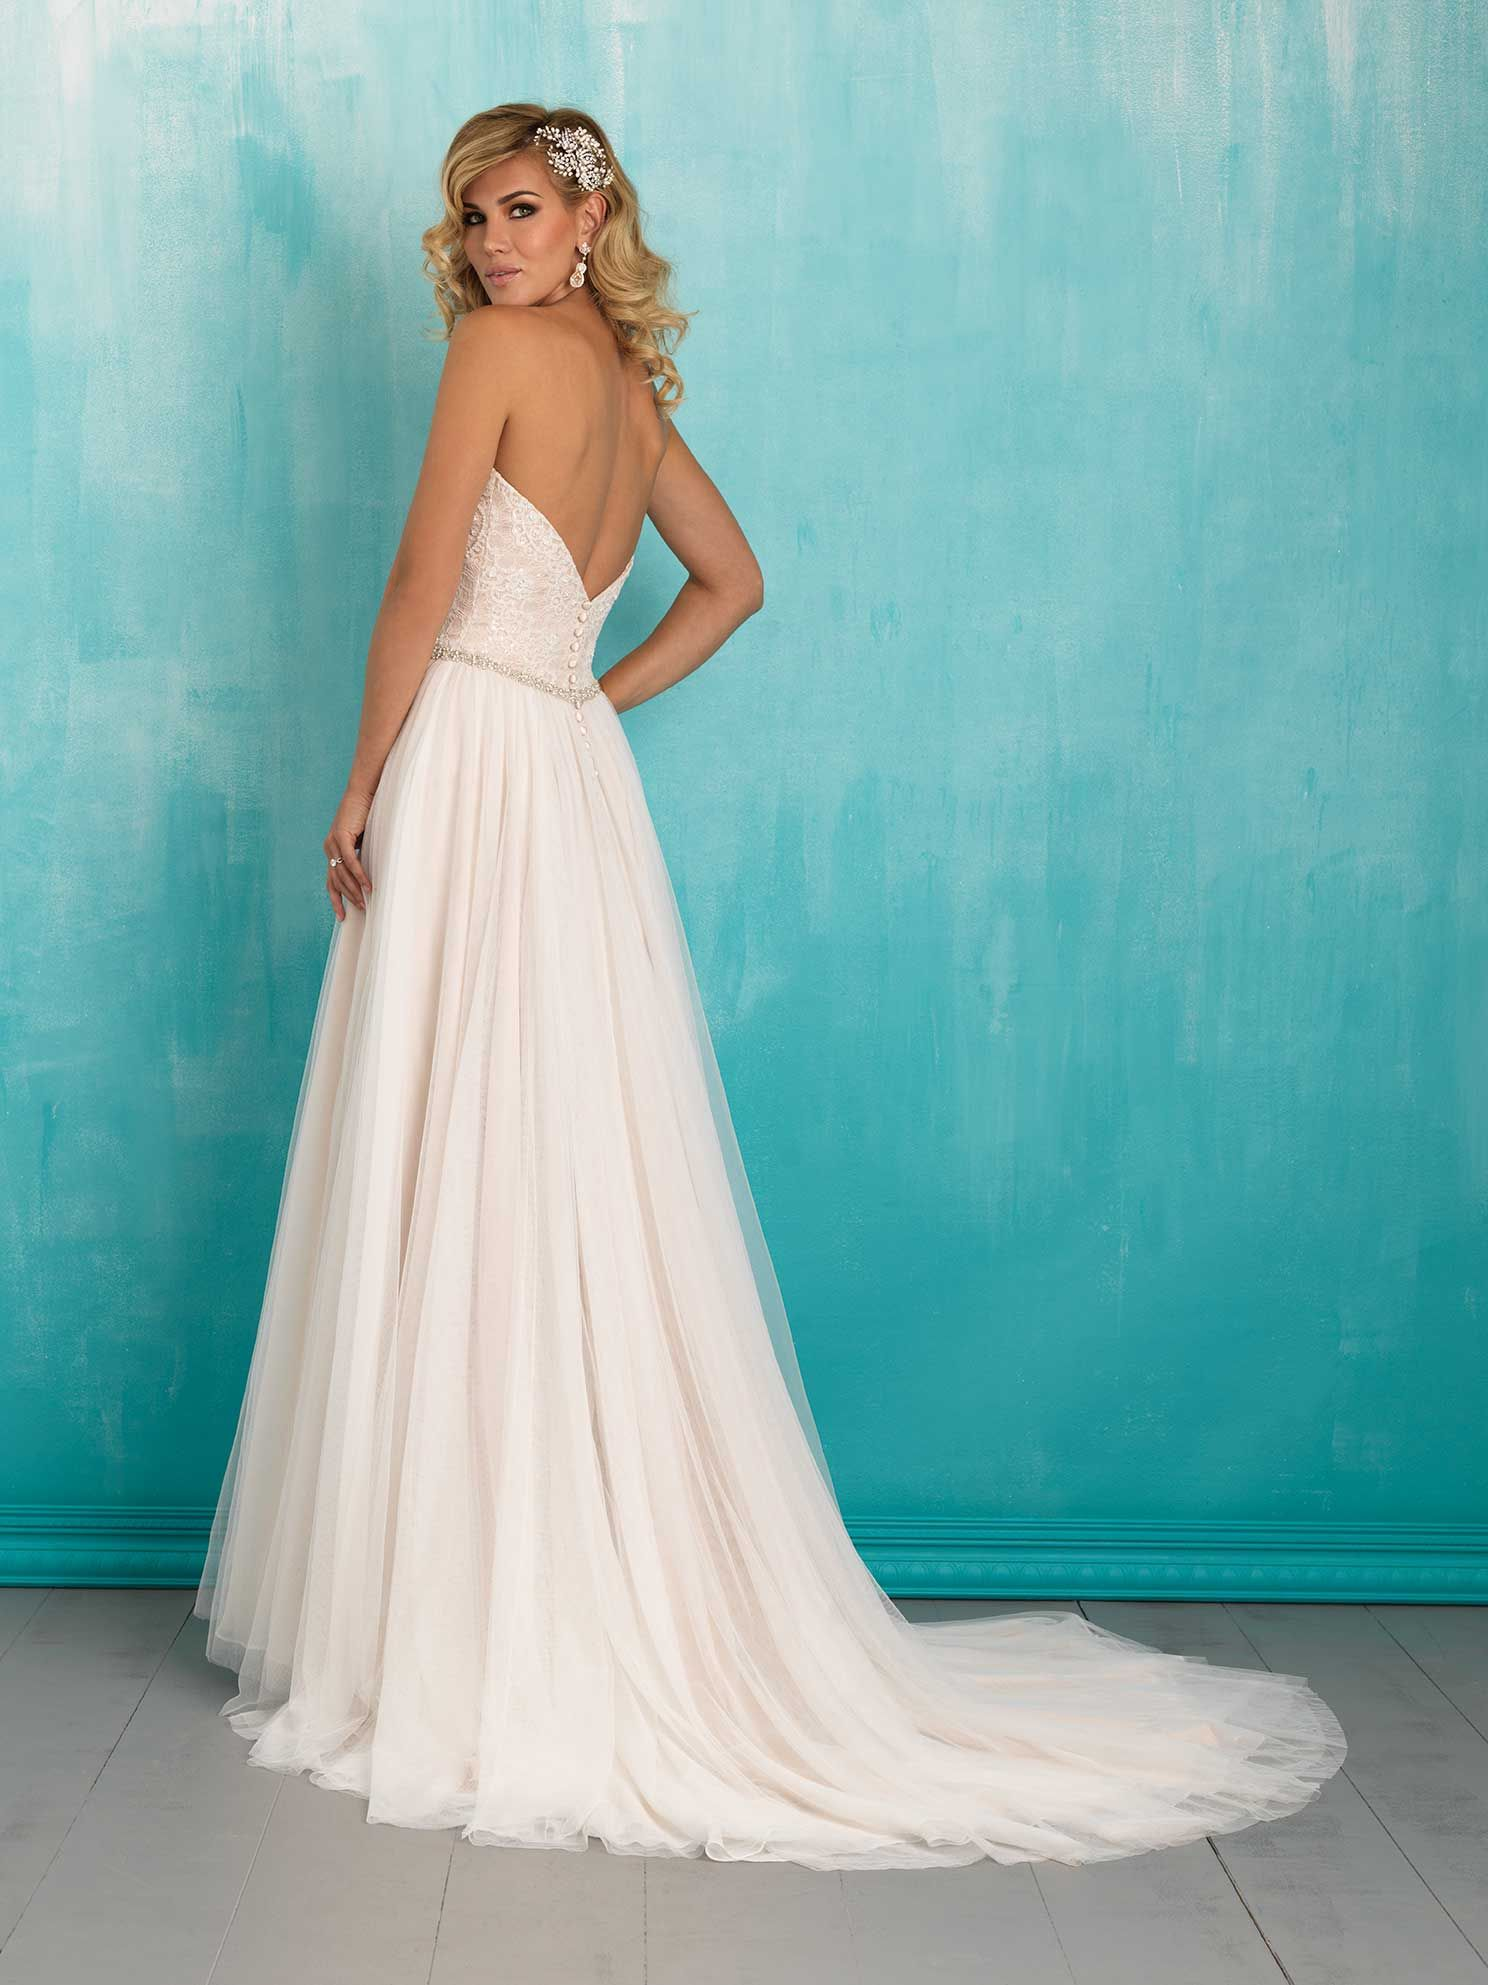 Allure Bridals 9324 Available At Lulu S Bridal Boutique Dallas Texas Salon Wedding Dresses